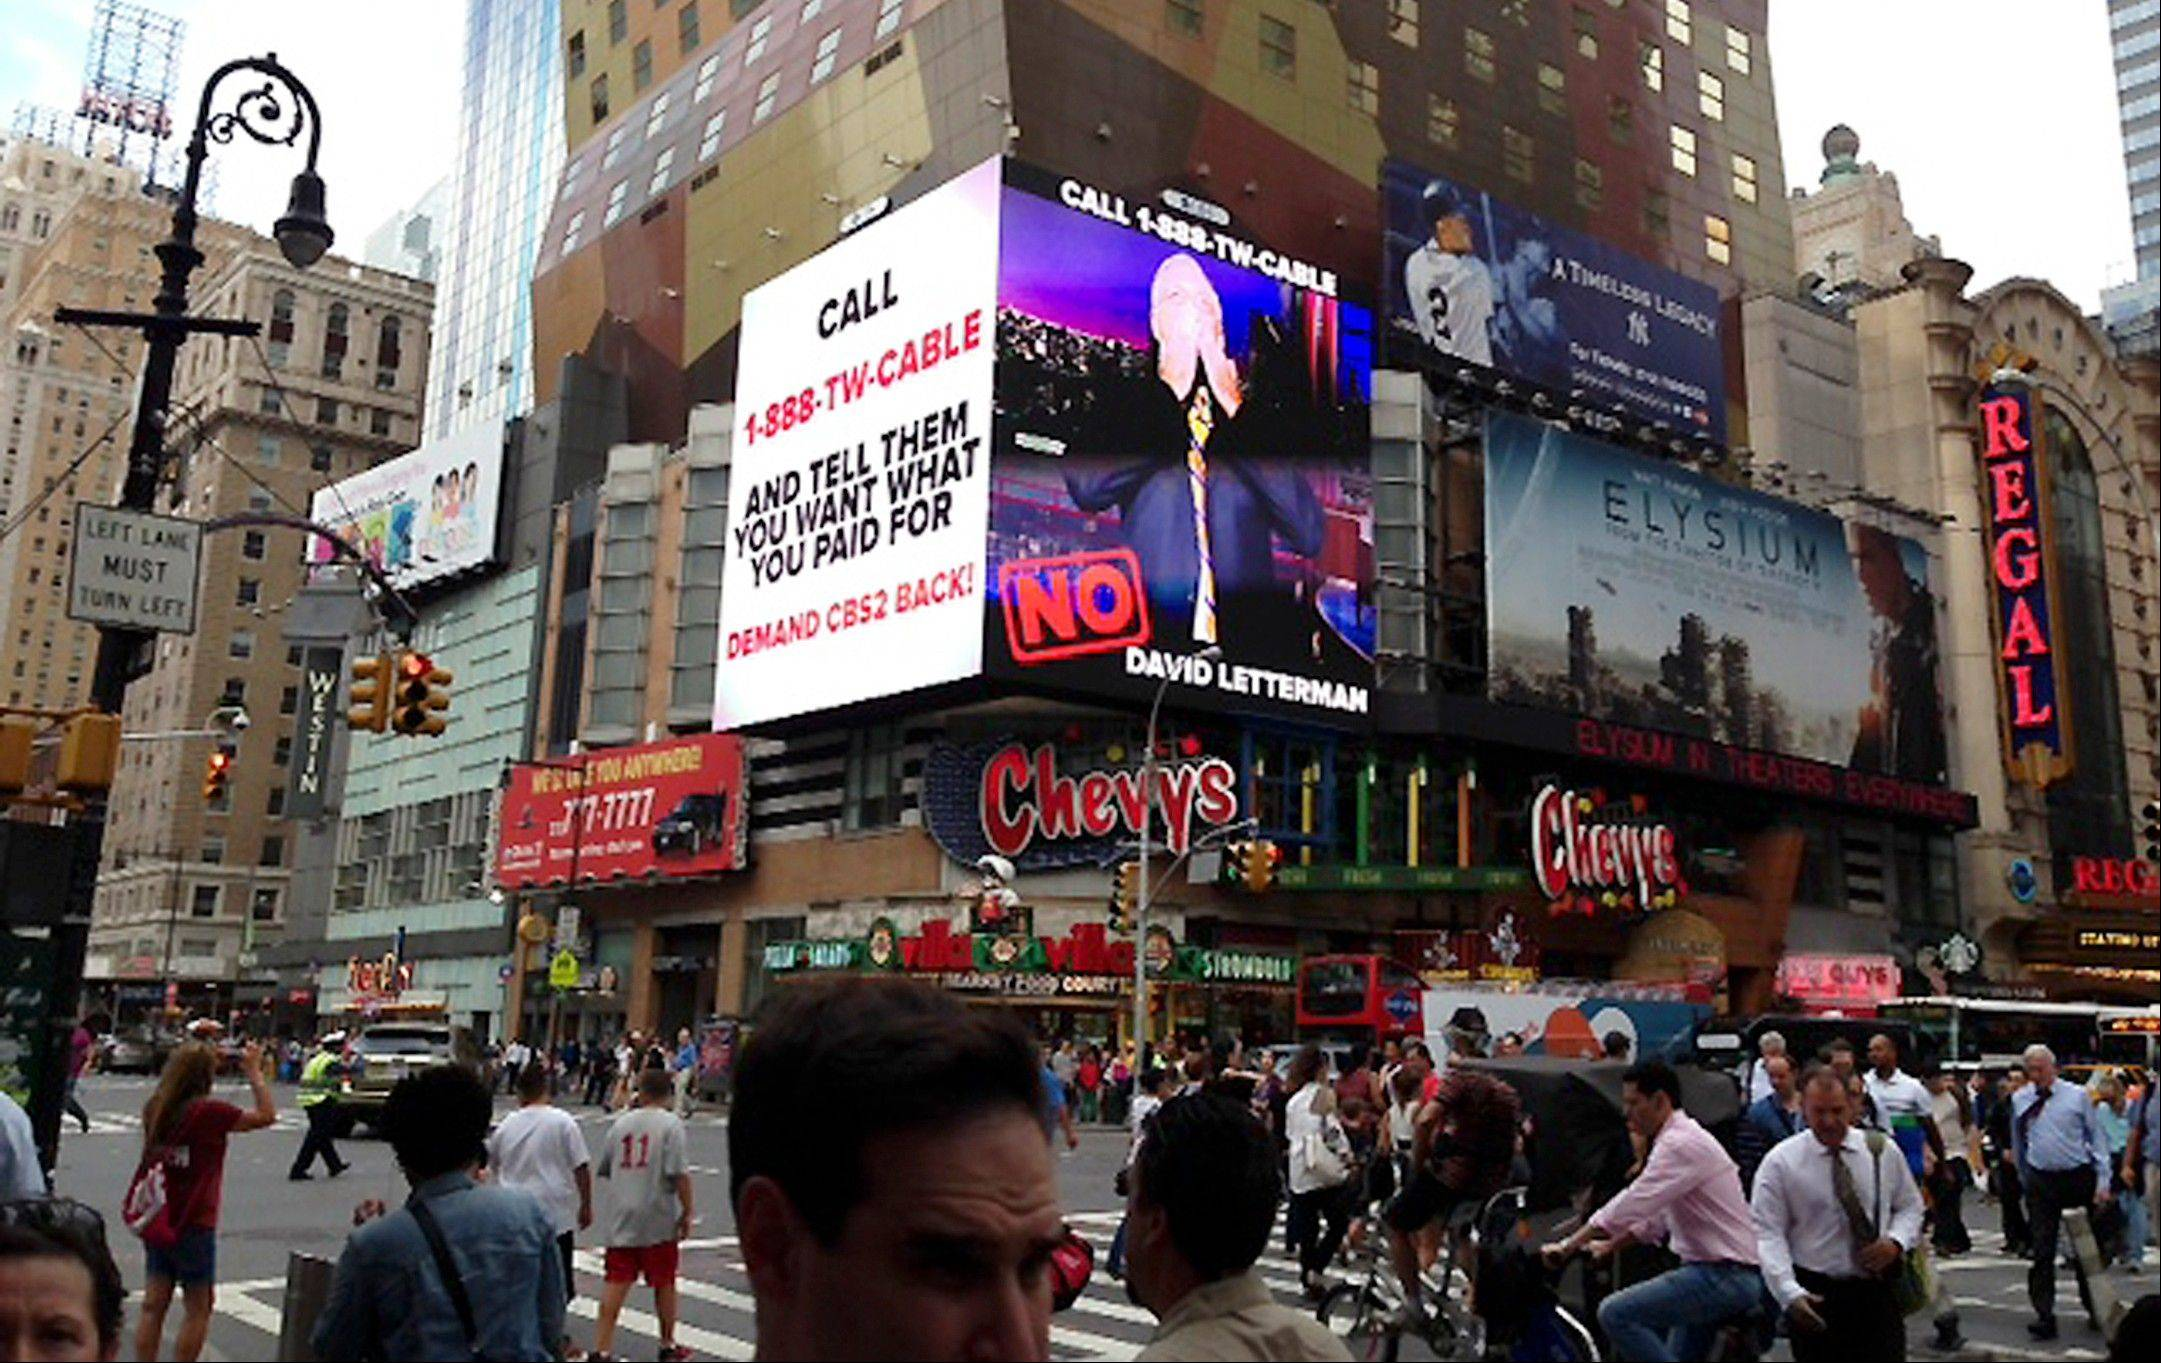 A CBS advertisement in Times Square in New York on Friday.